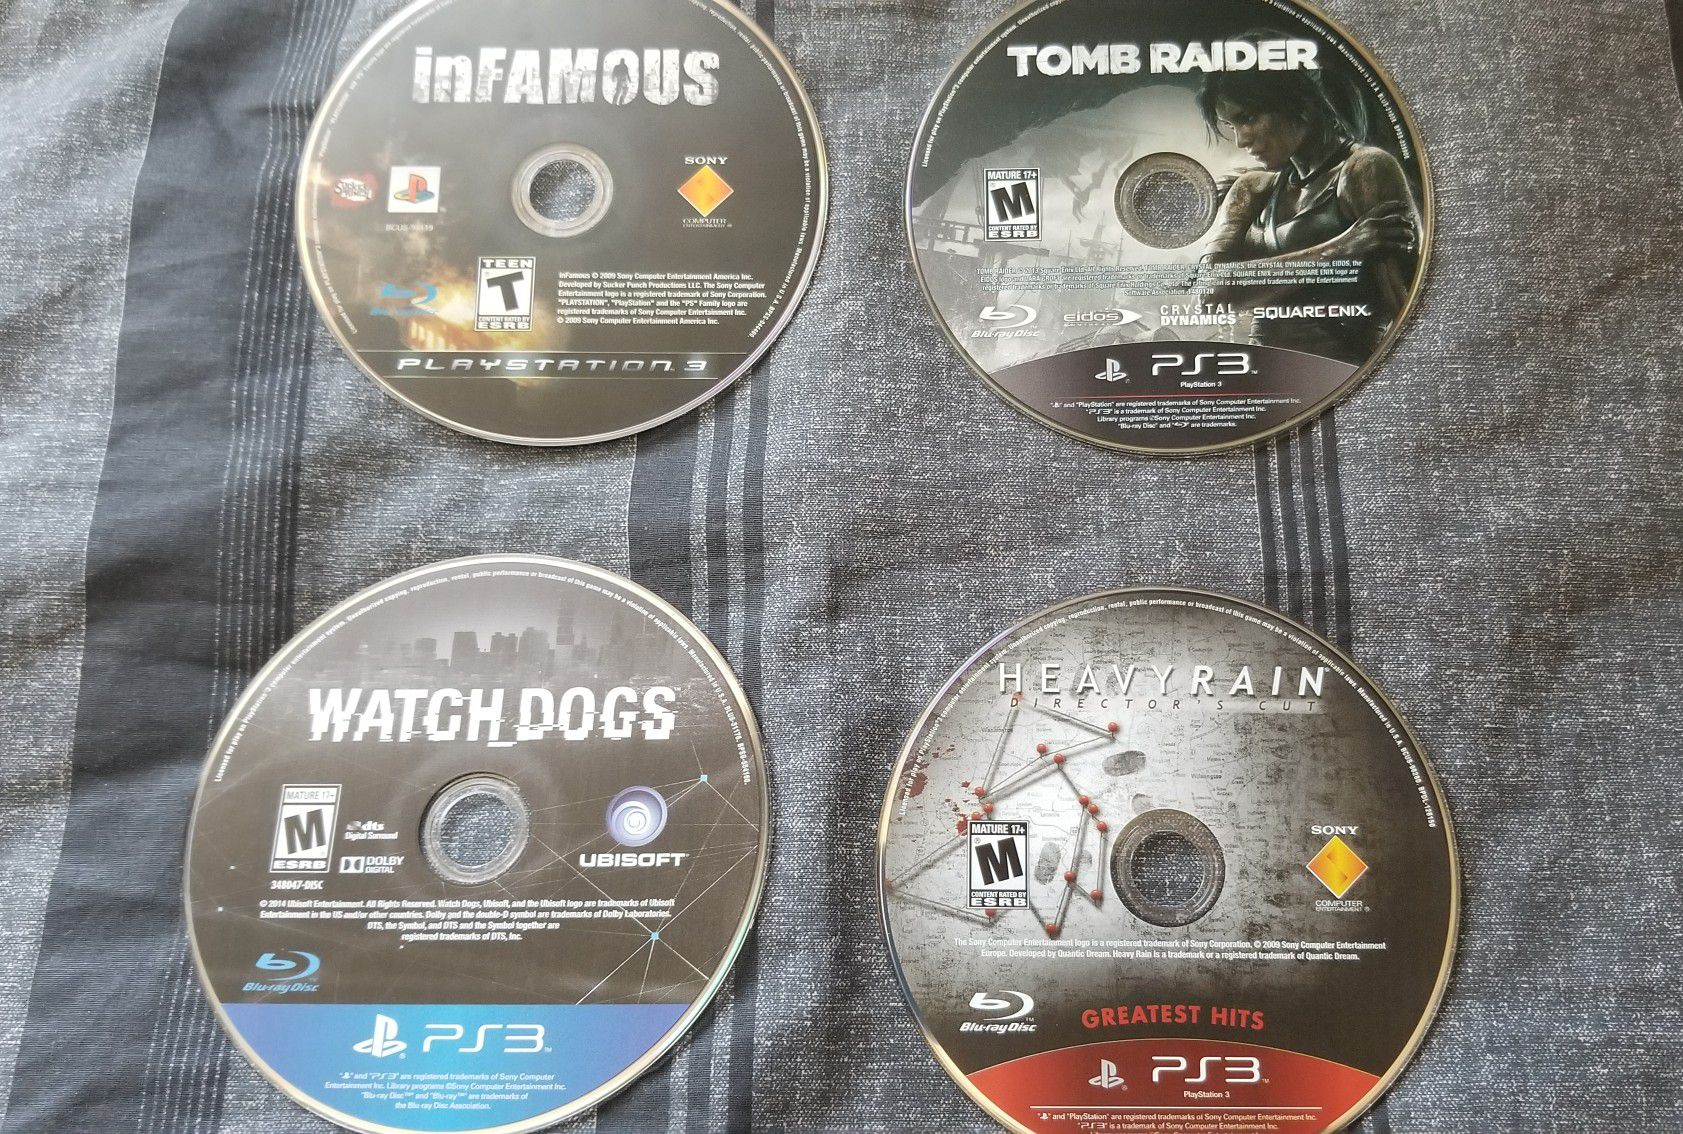 PS3 slim w/2 controllers/accessories/9 games